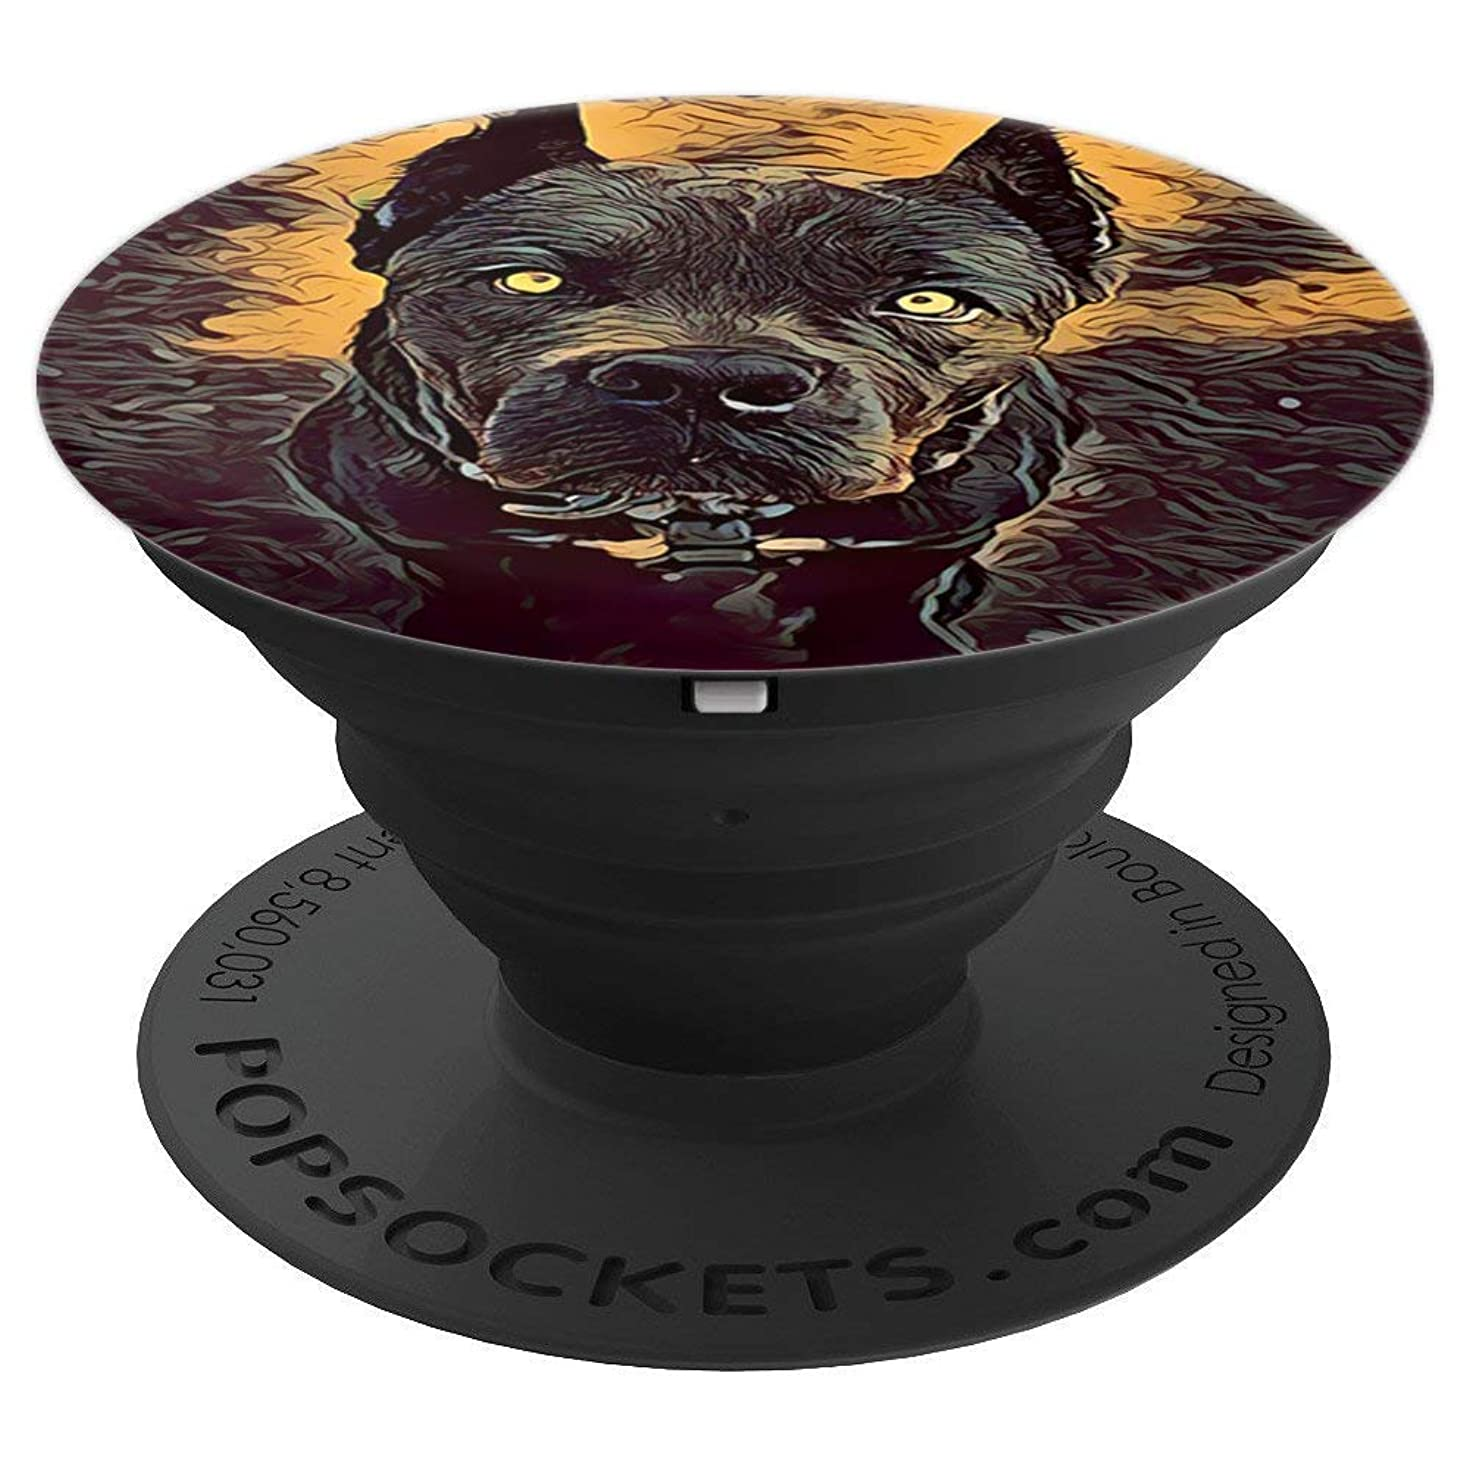 Cane Corso Italian Mastiff Head Dog Portrait - PopSockets Grip and Stand for Phones and Tablets